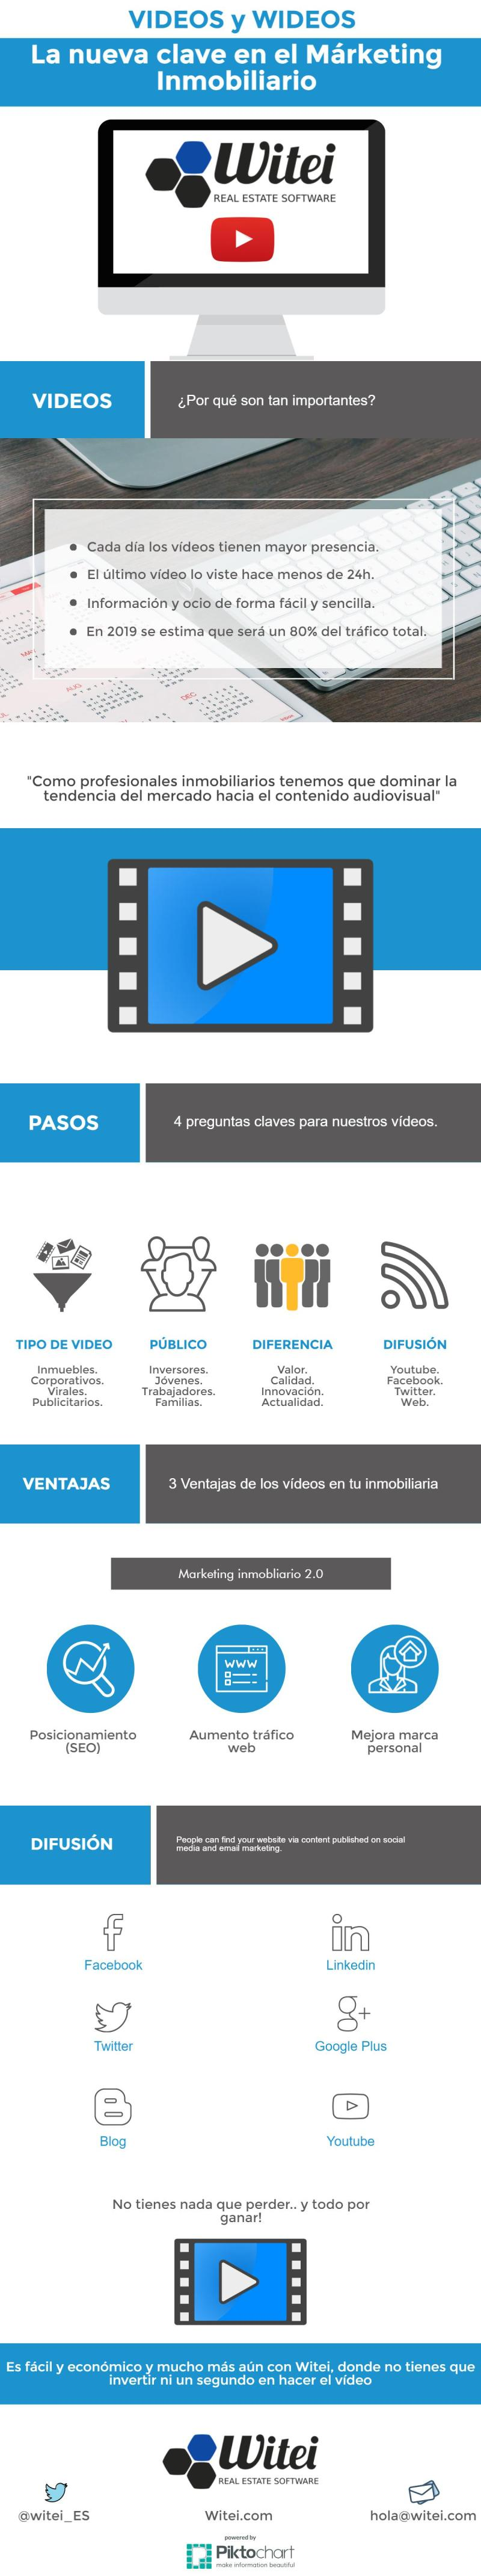 Marketing inmobiliario 2.0